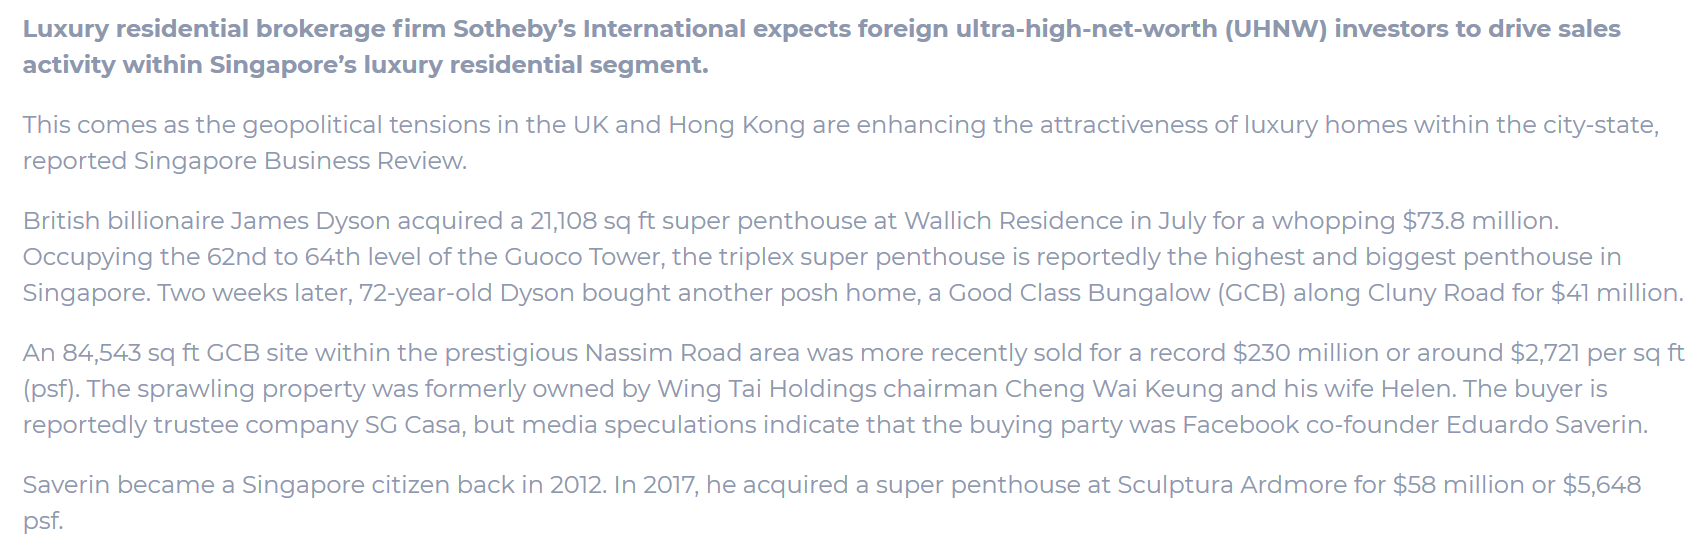 parc-komo-ultra-rich-buys-singapore-homes-1-singapore